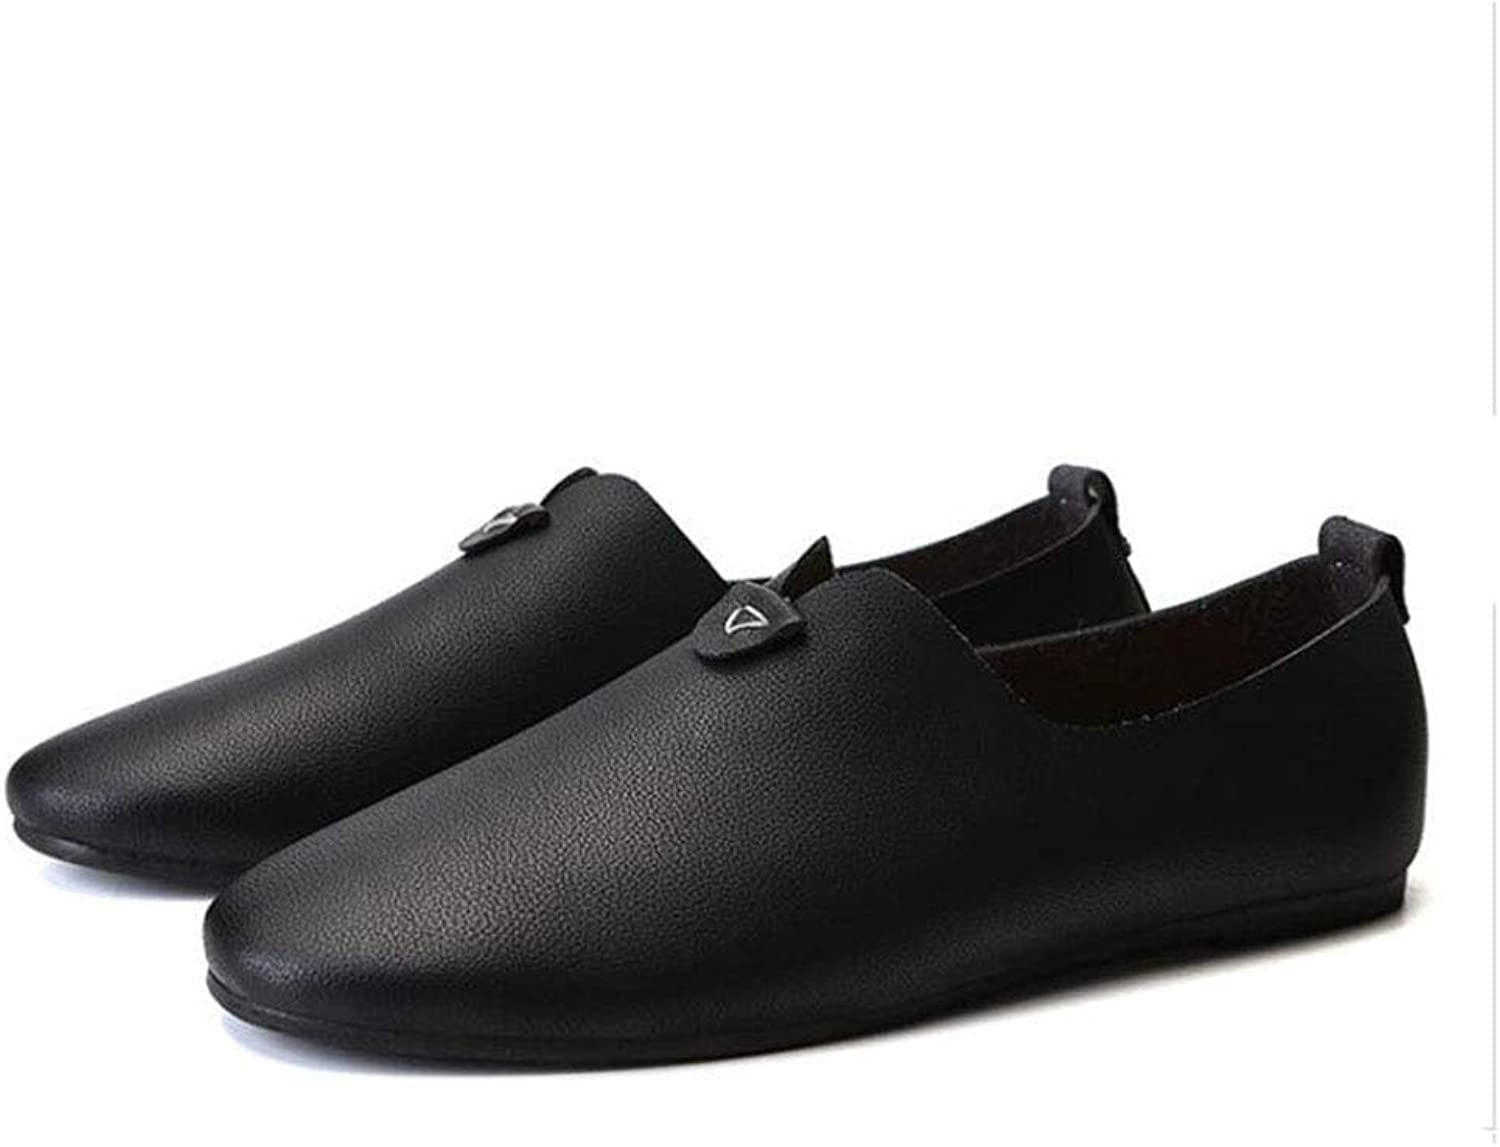 Y-H Men's shoes,Microfiber Loafers & Slip-Ons Peas shoes Lazy shoes,comfortable Breathable Casual Walking shoes Cycling shoes